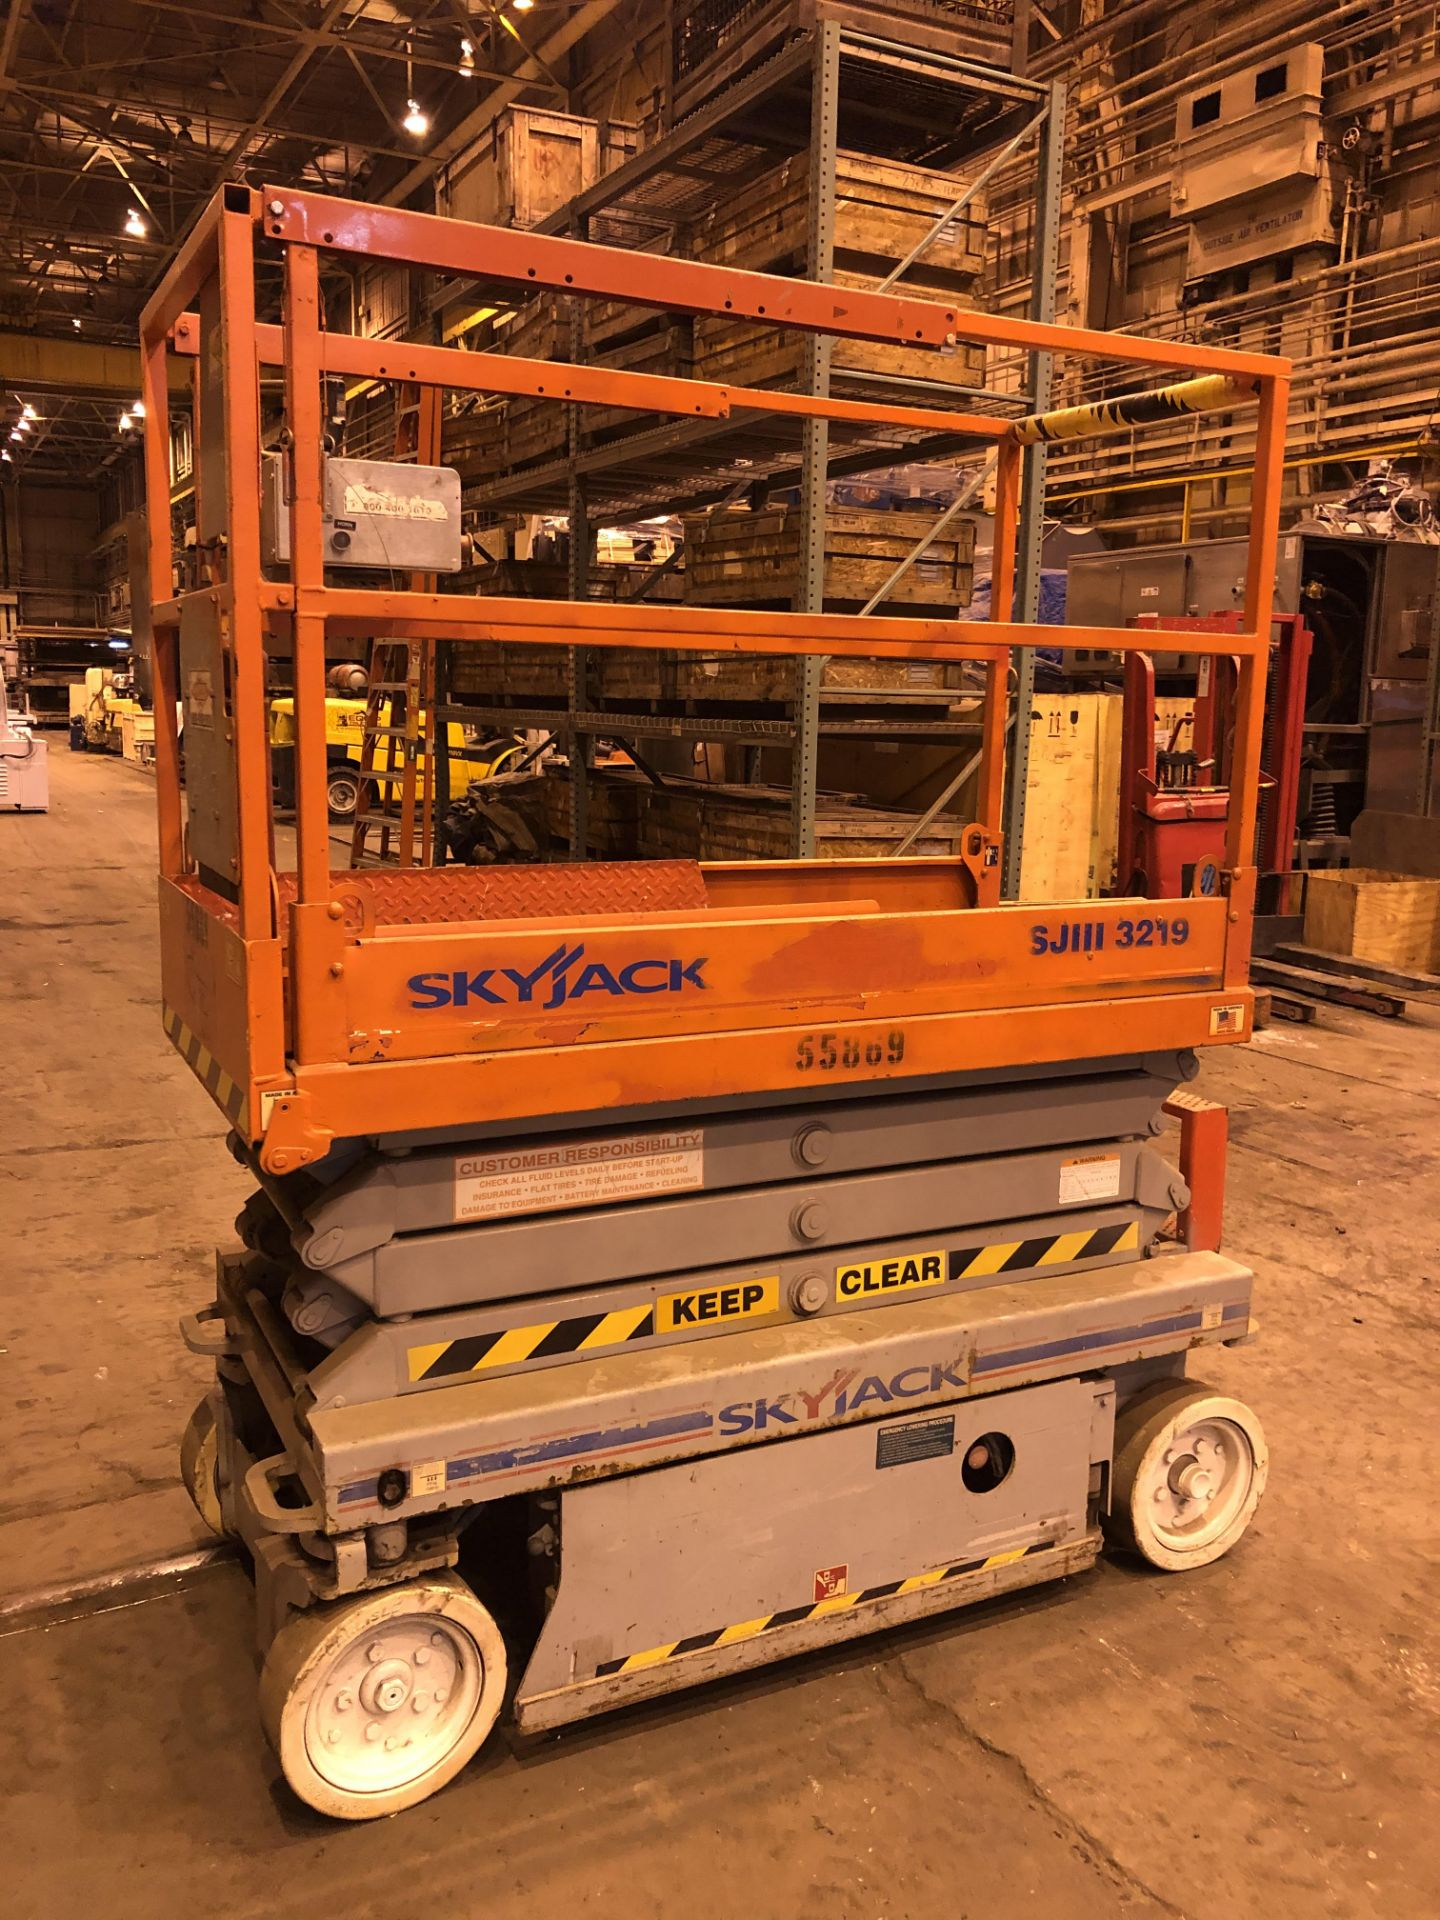 Lot 14 - SkyJack SJ111-3219 Scissor Lift